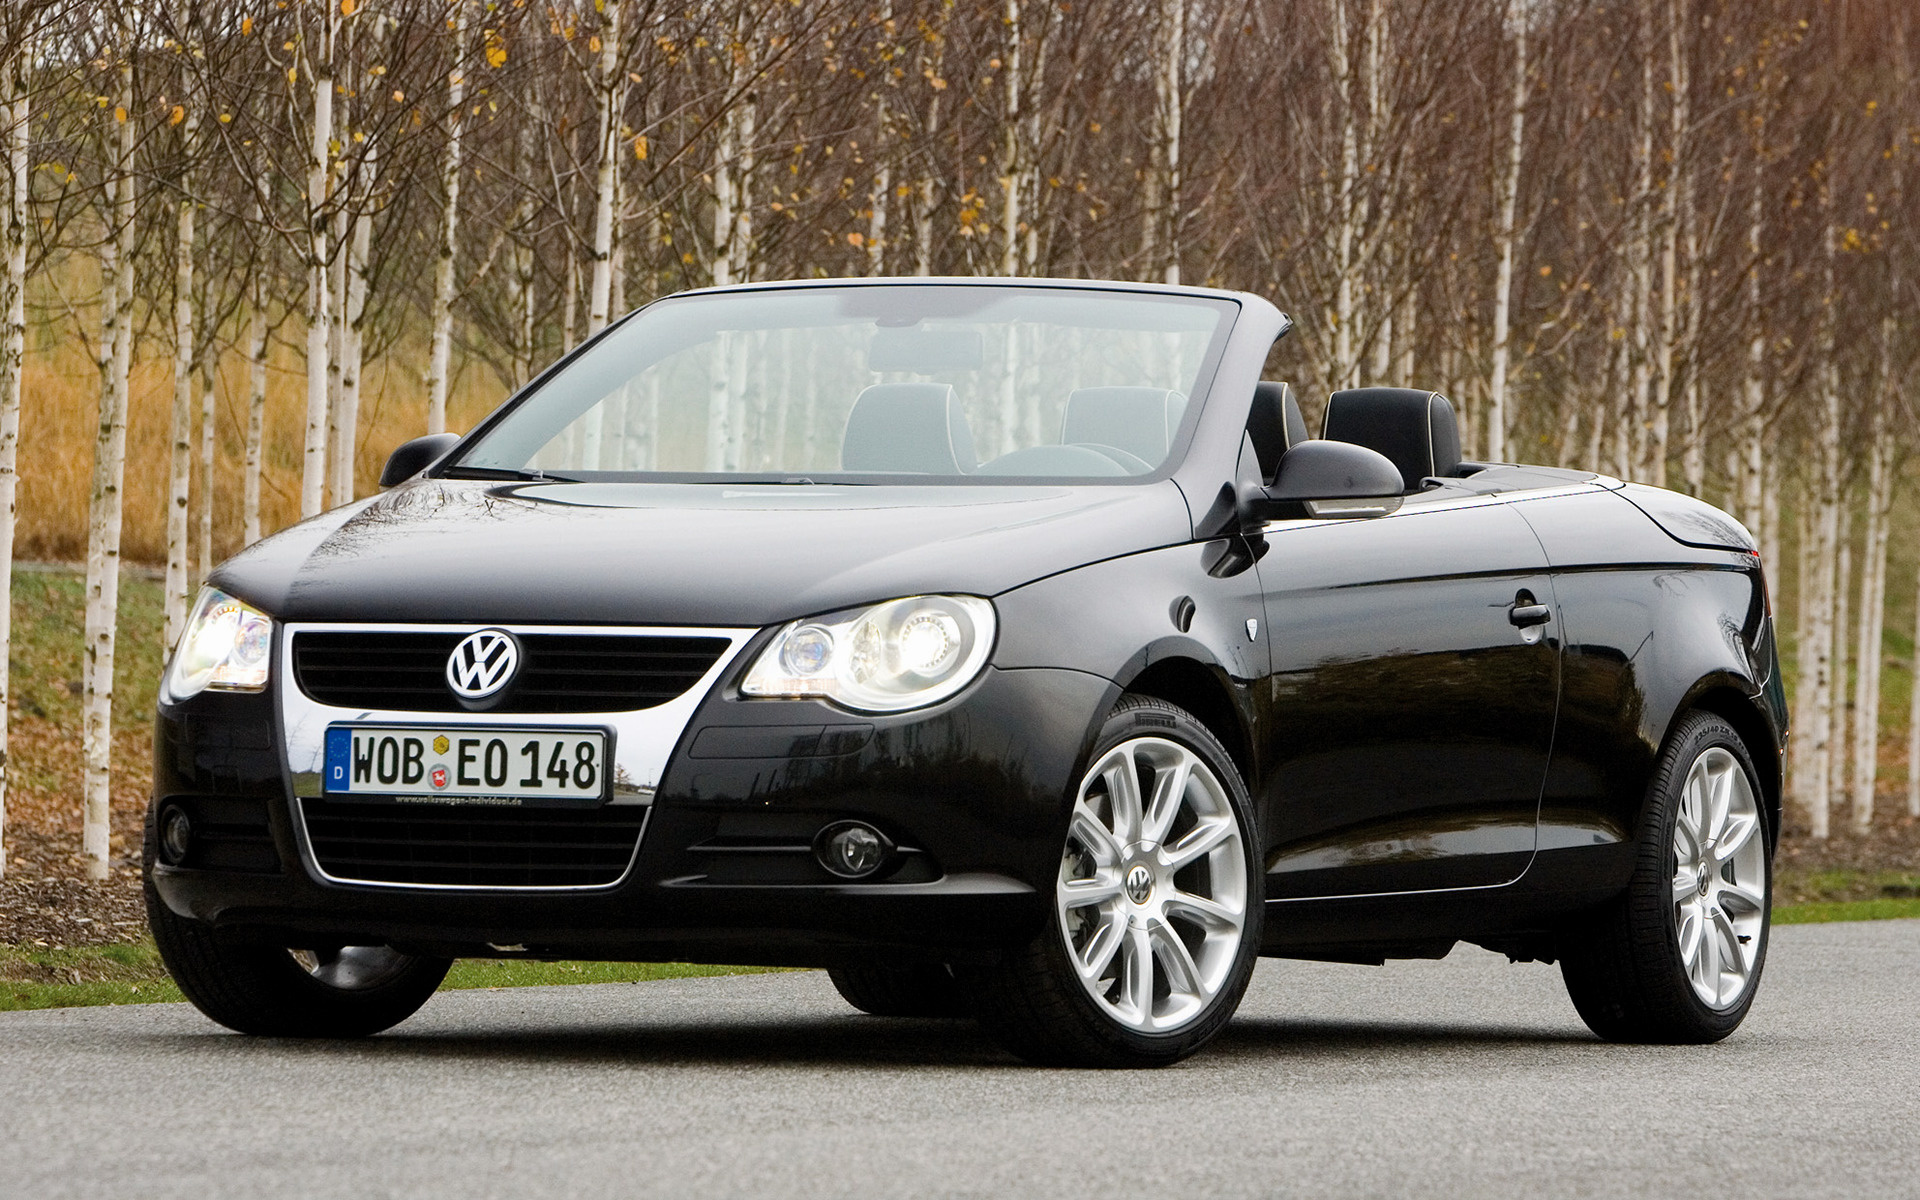 volkswagen eos individual 2007 wallpapers and hd images. Black Bedroom Furniture Sets. Home Design Ideas